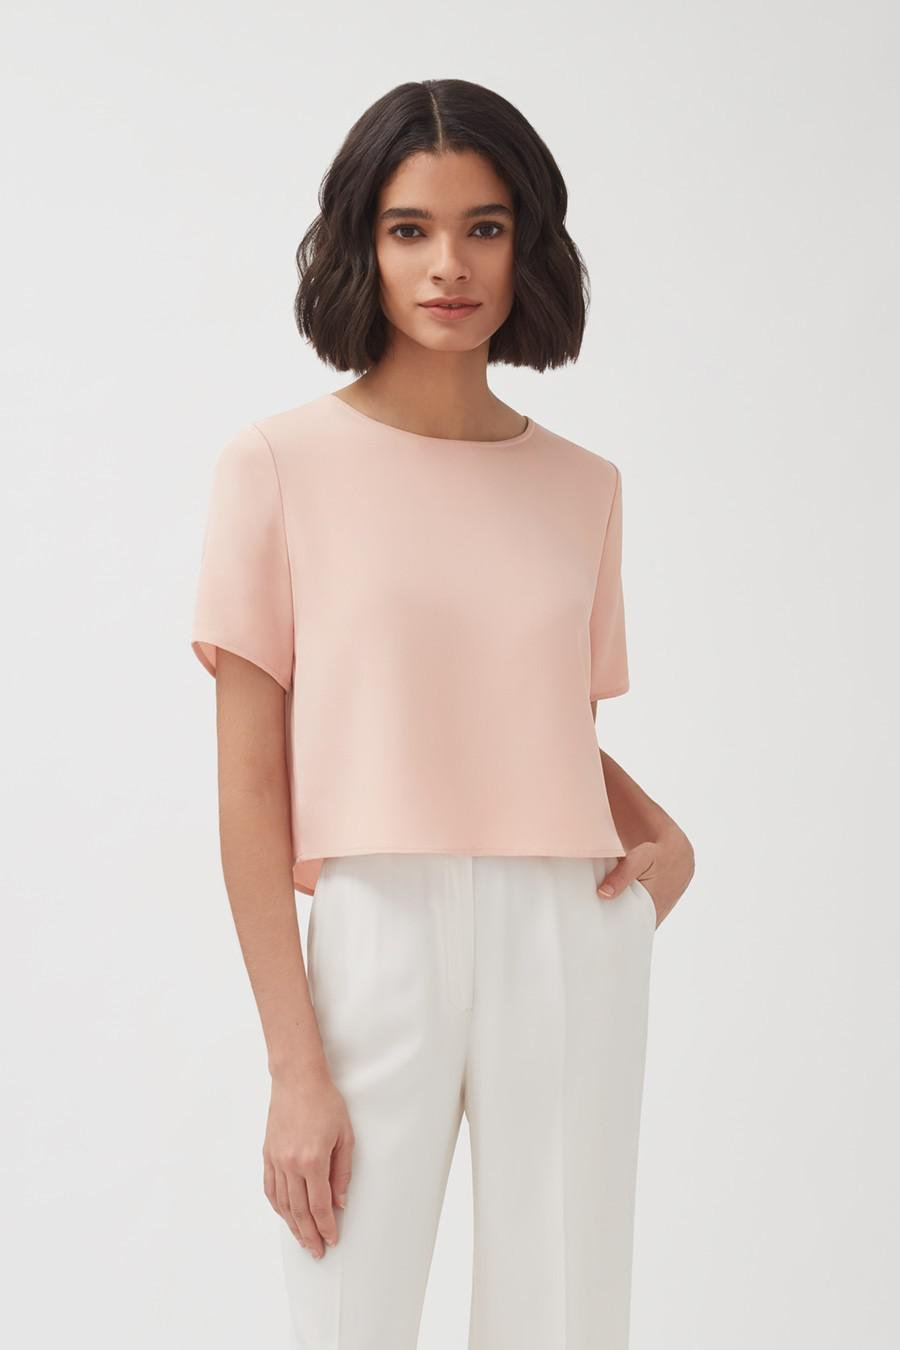 Women's Silk Cropped Tee in Soft Rose   Size: XL   3-Ply Silk by Cuyana 1